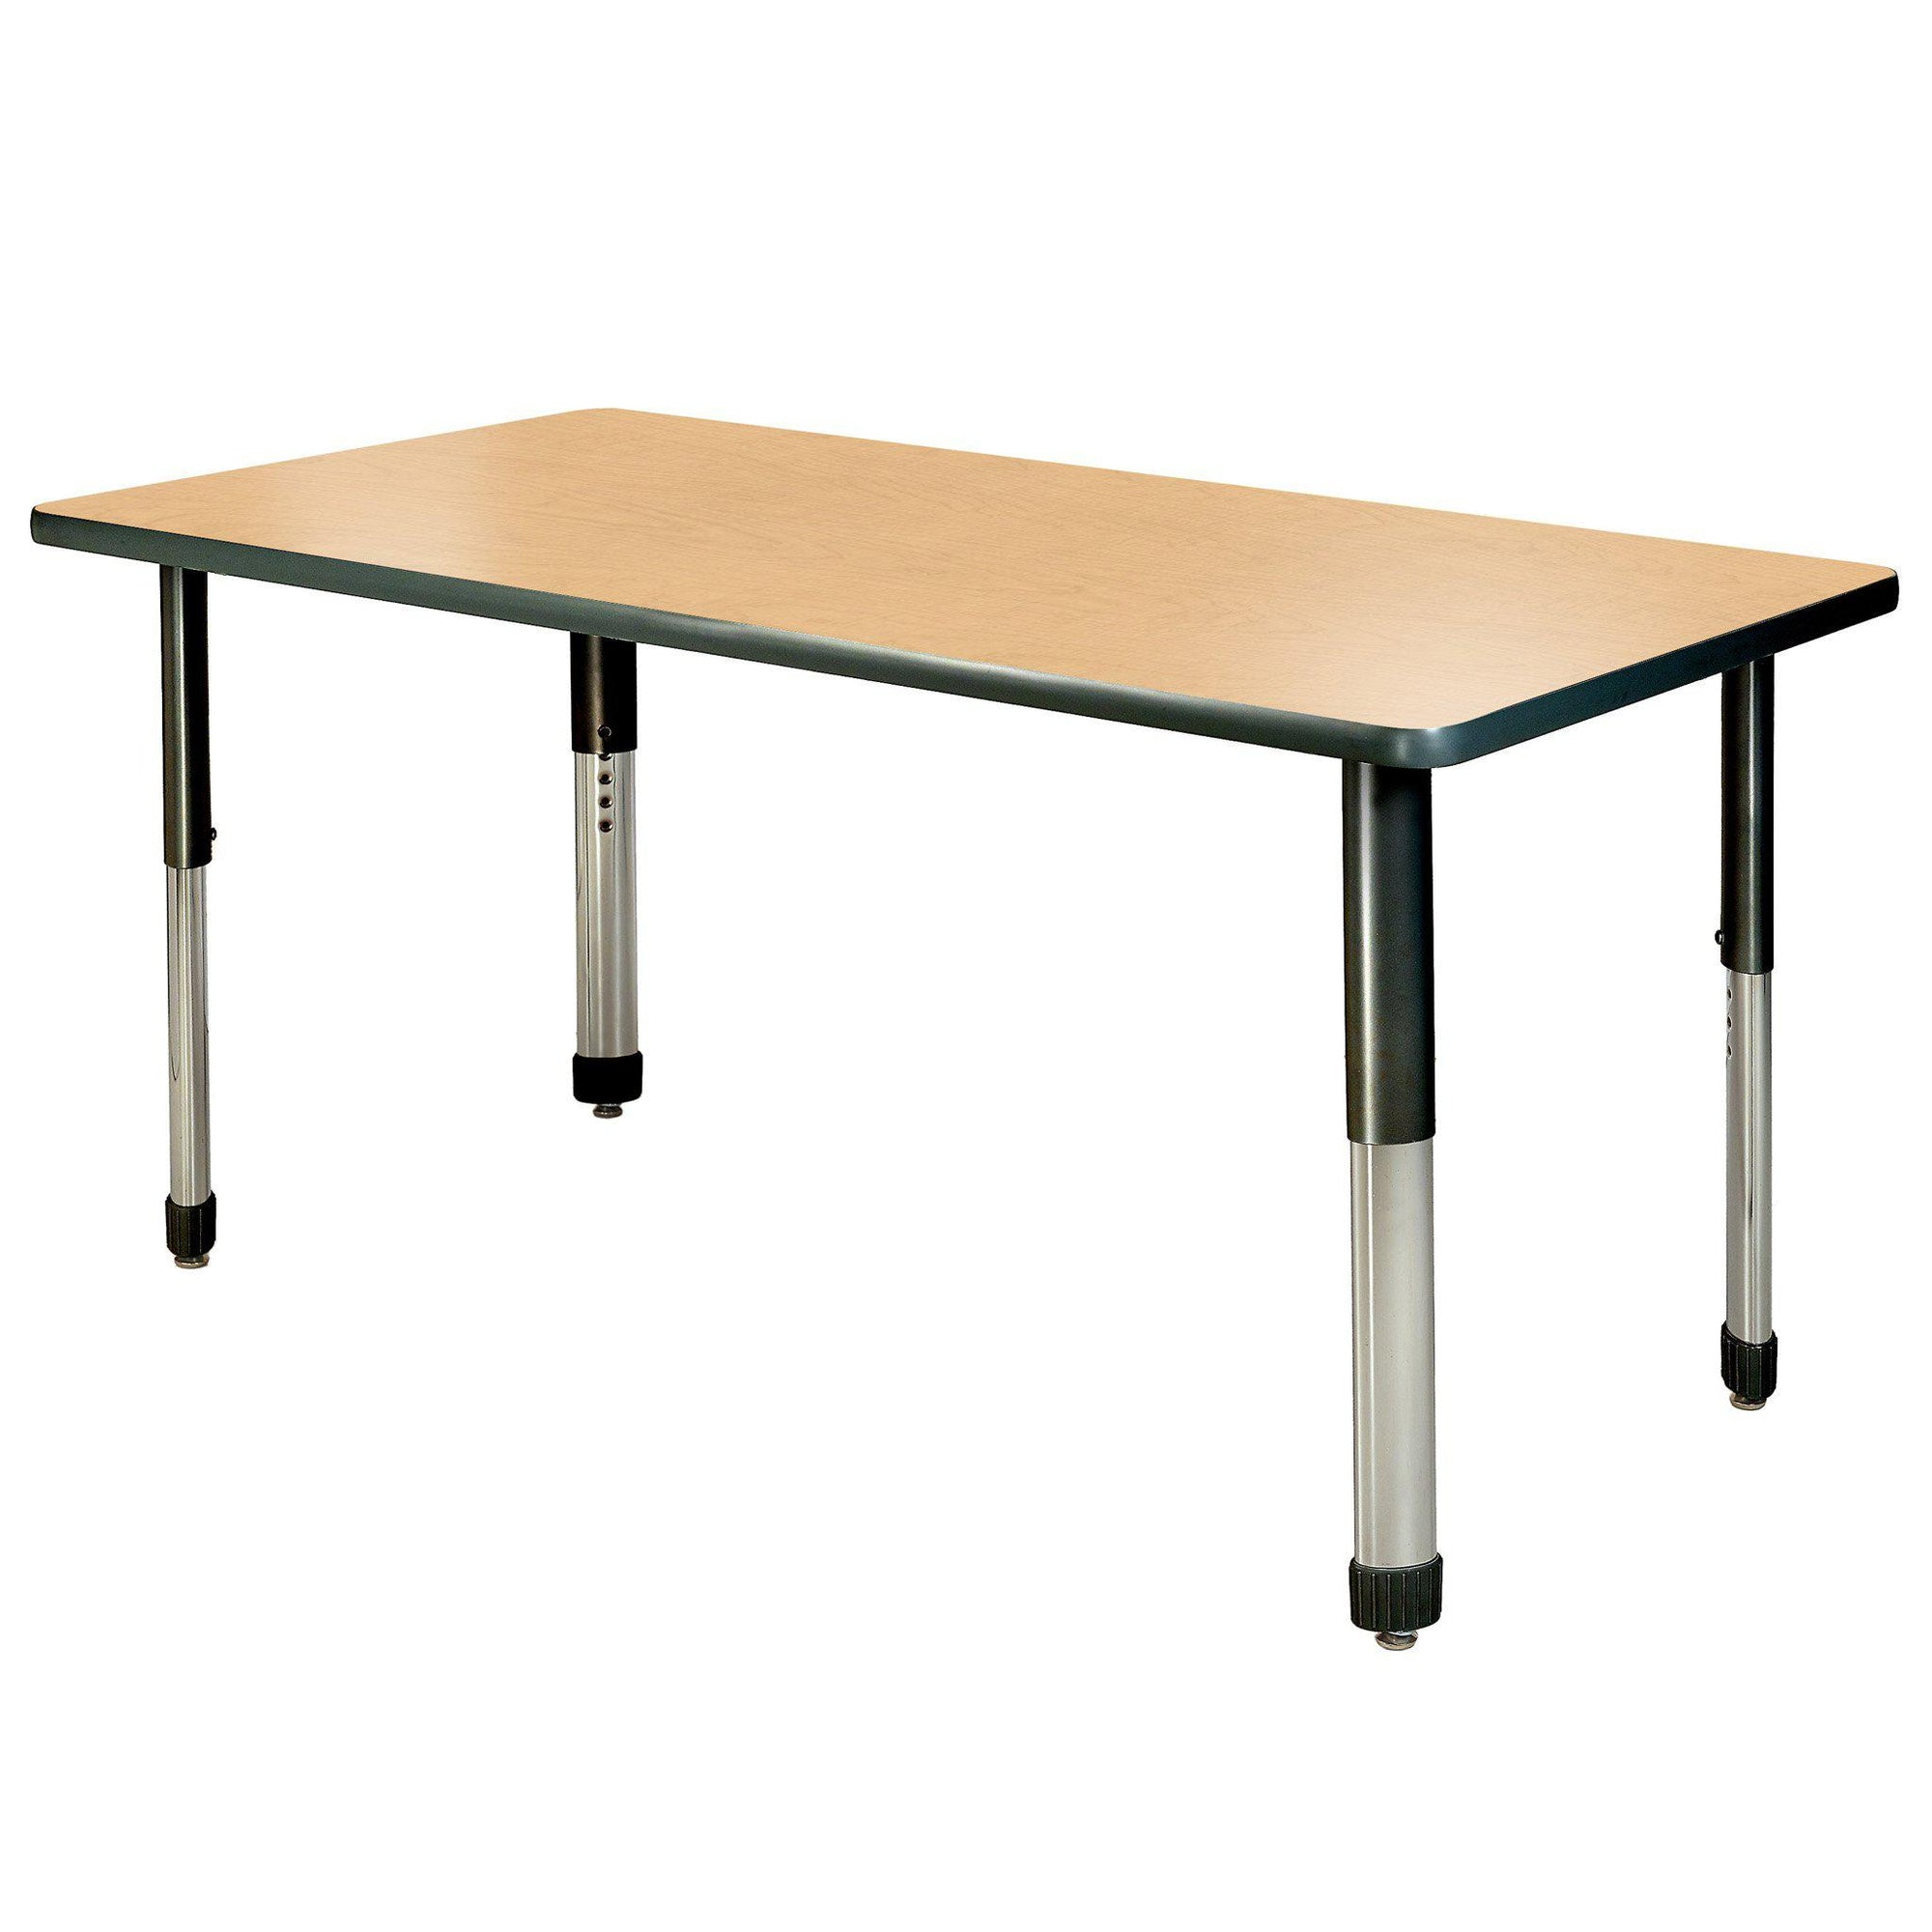 "Aero Activity Table, 36"" x 60"" Rectangle, Oval Adjustable Height Legs"